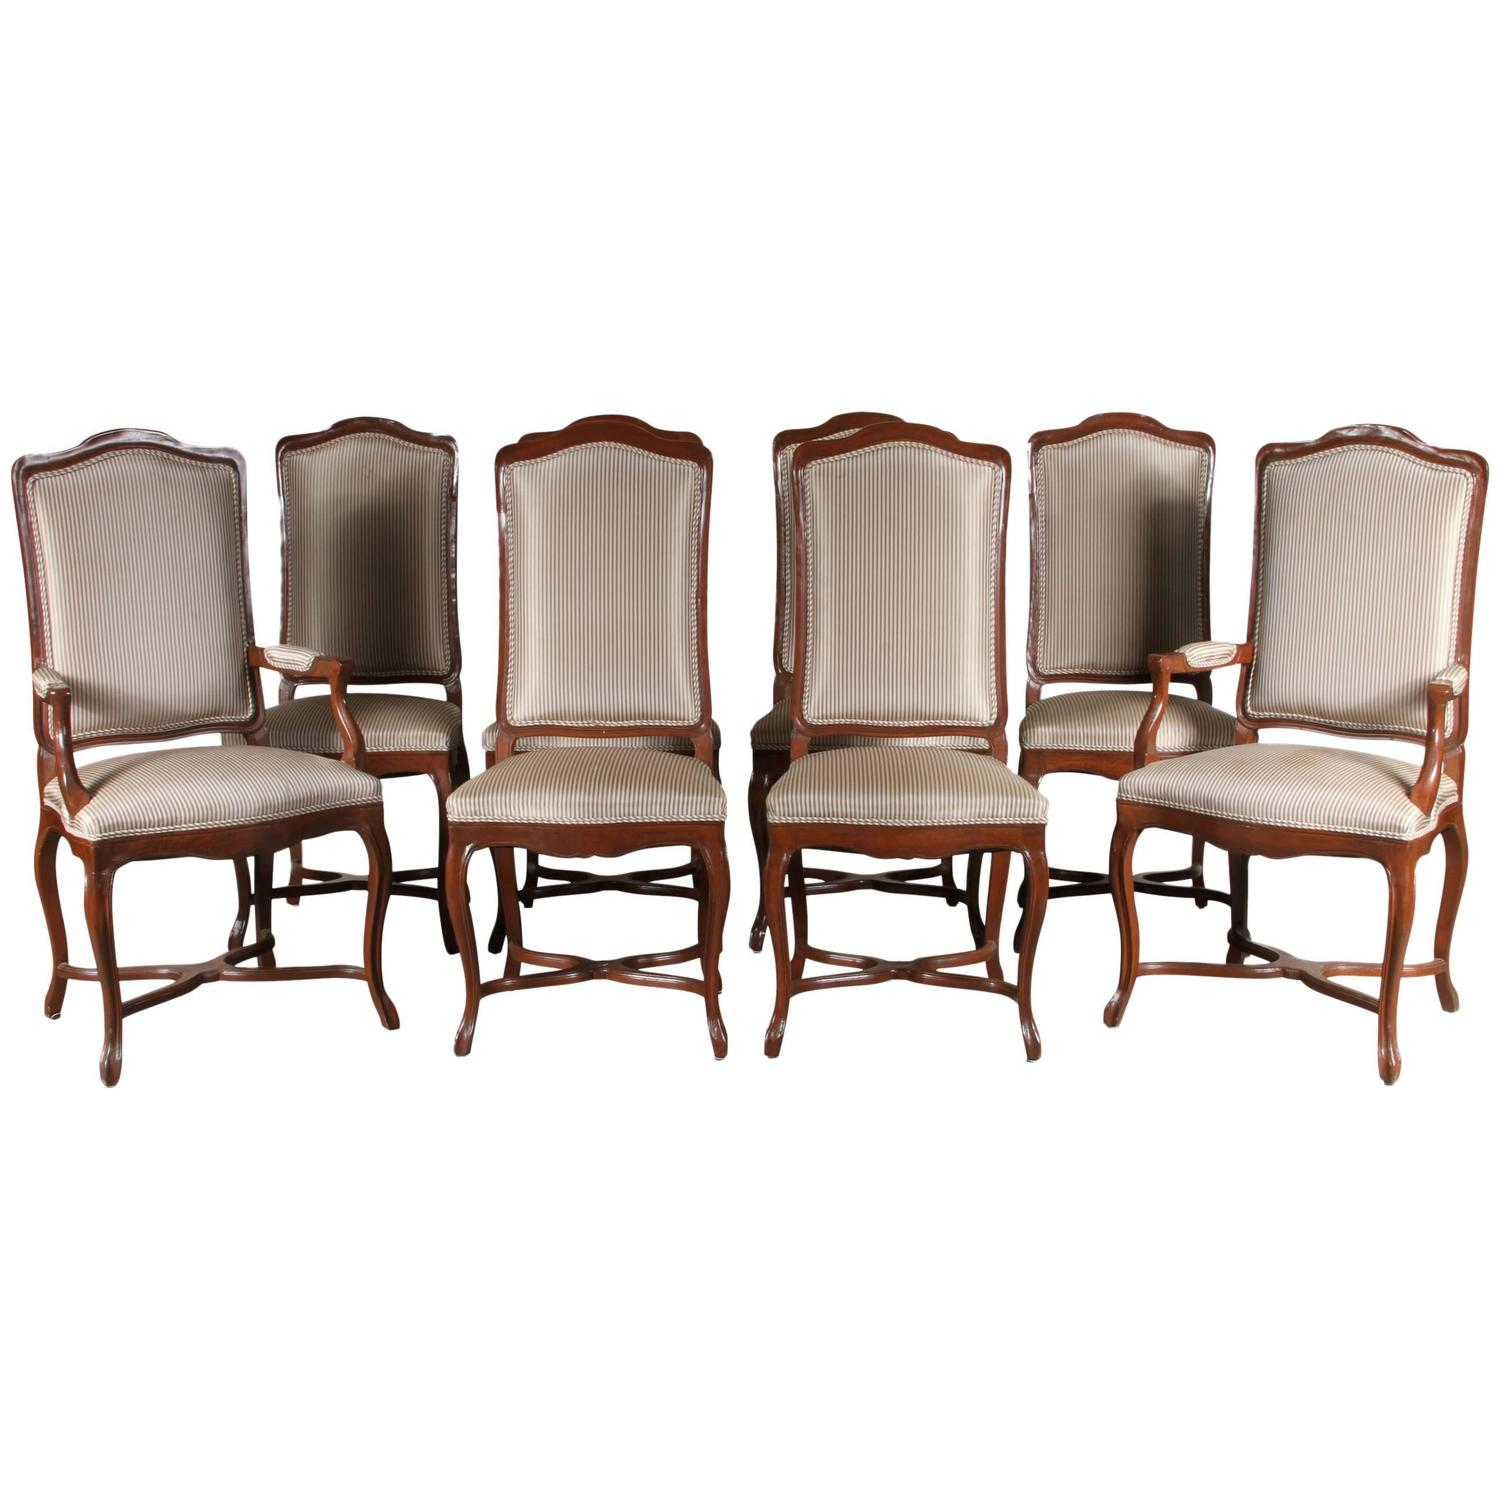 Set of Eight French Provincial Style Walnut Dining Chairs